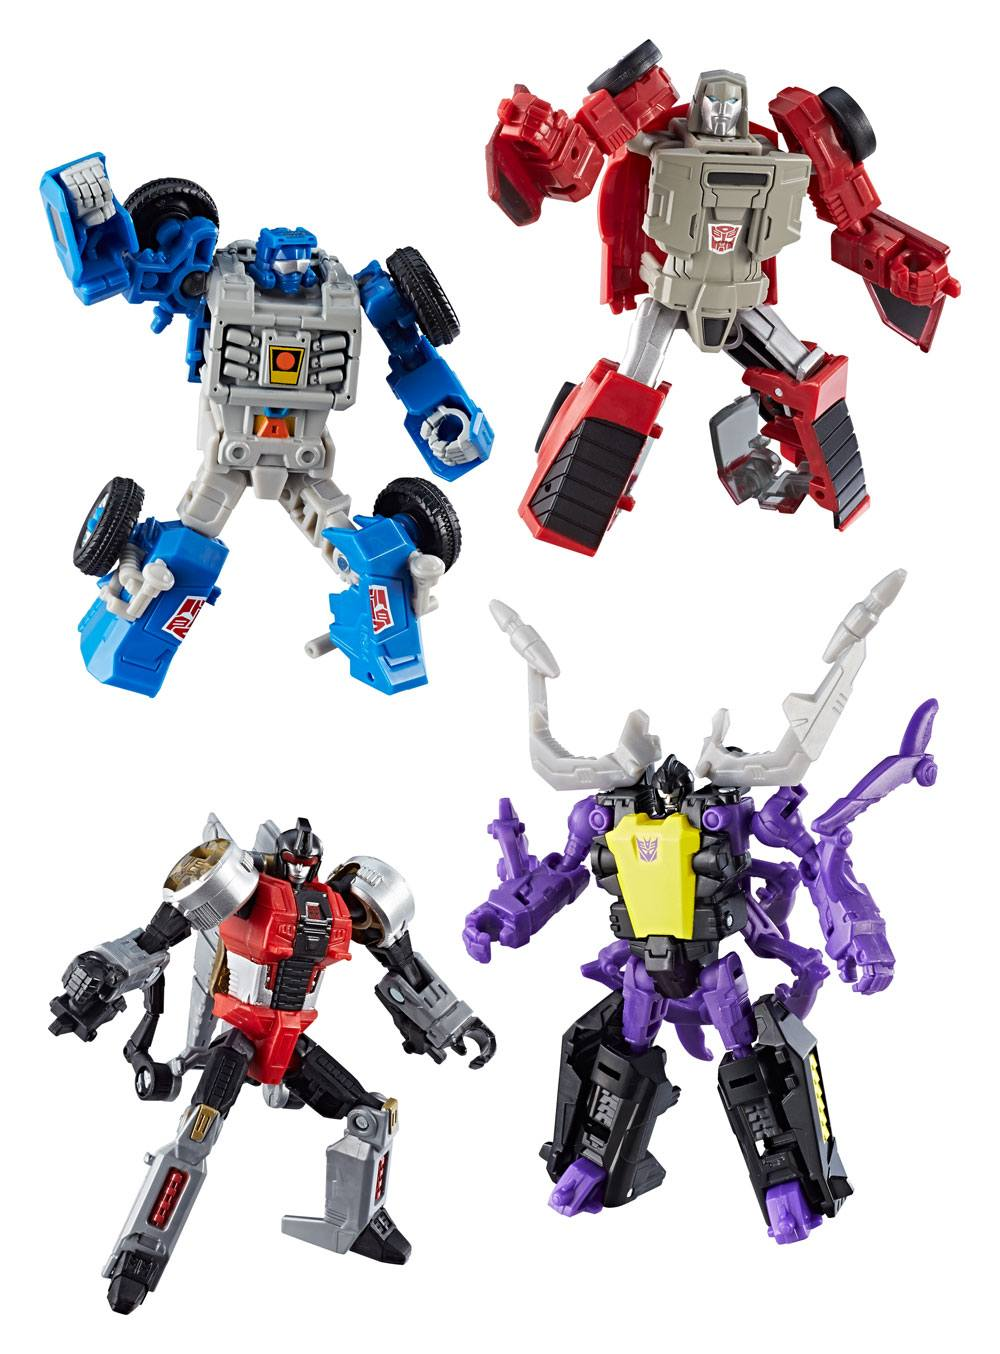 Transformers Generations Power of the Primes Action Figures Legends Class 2018 Wave 1 Assortment (8)